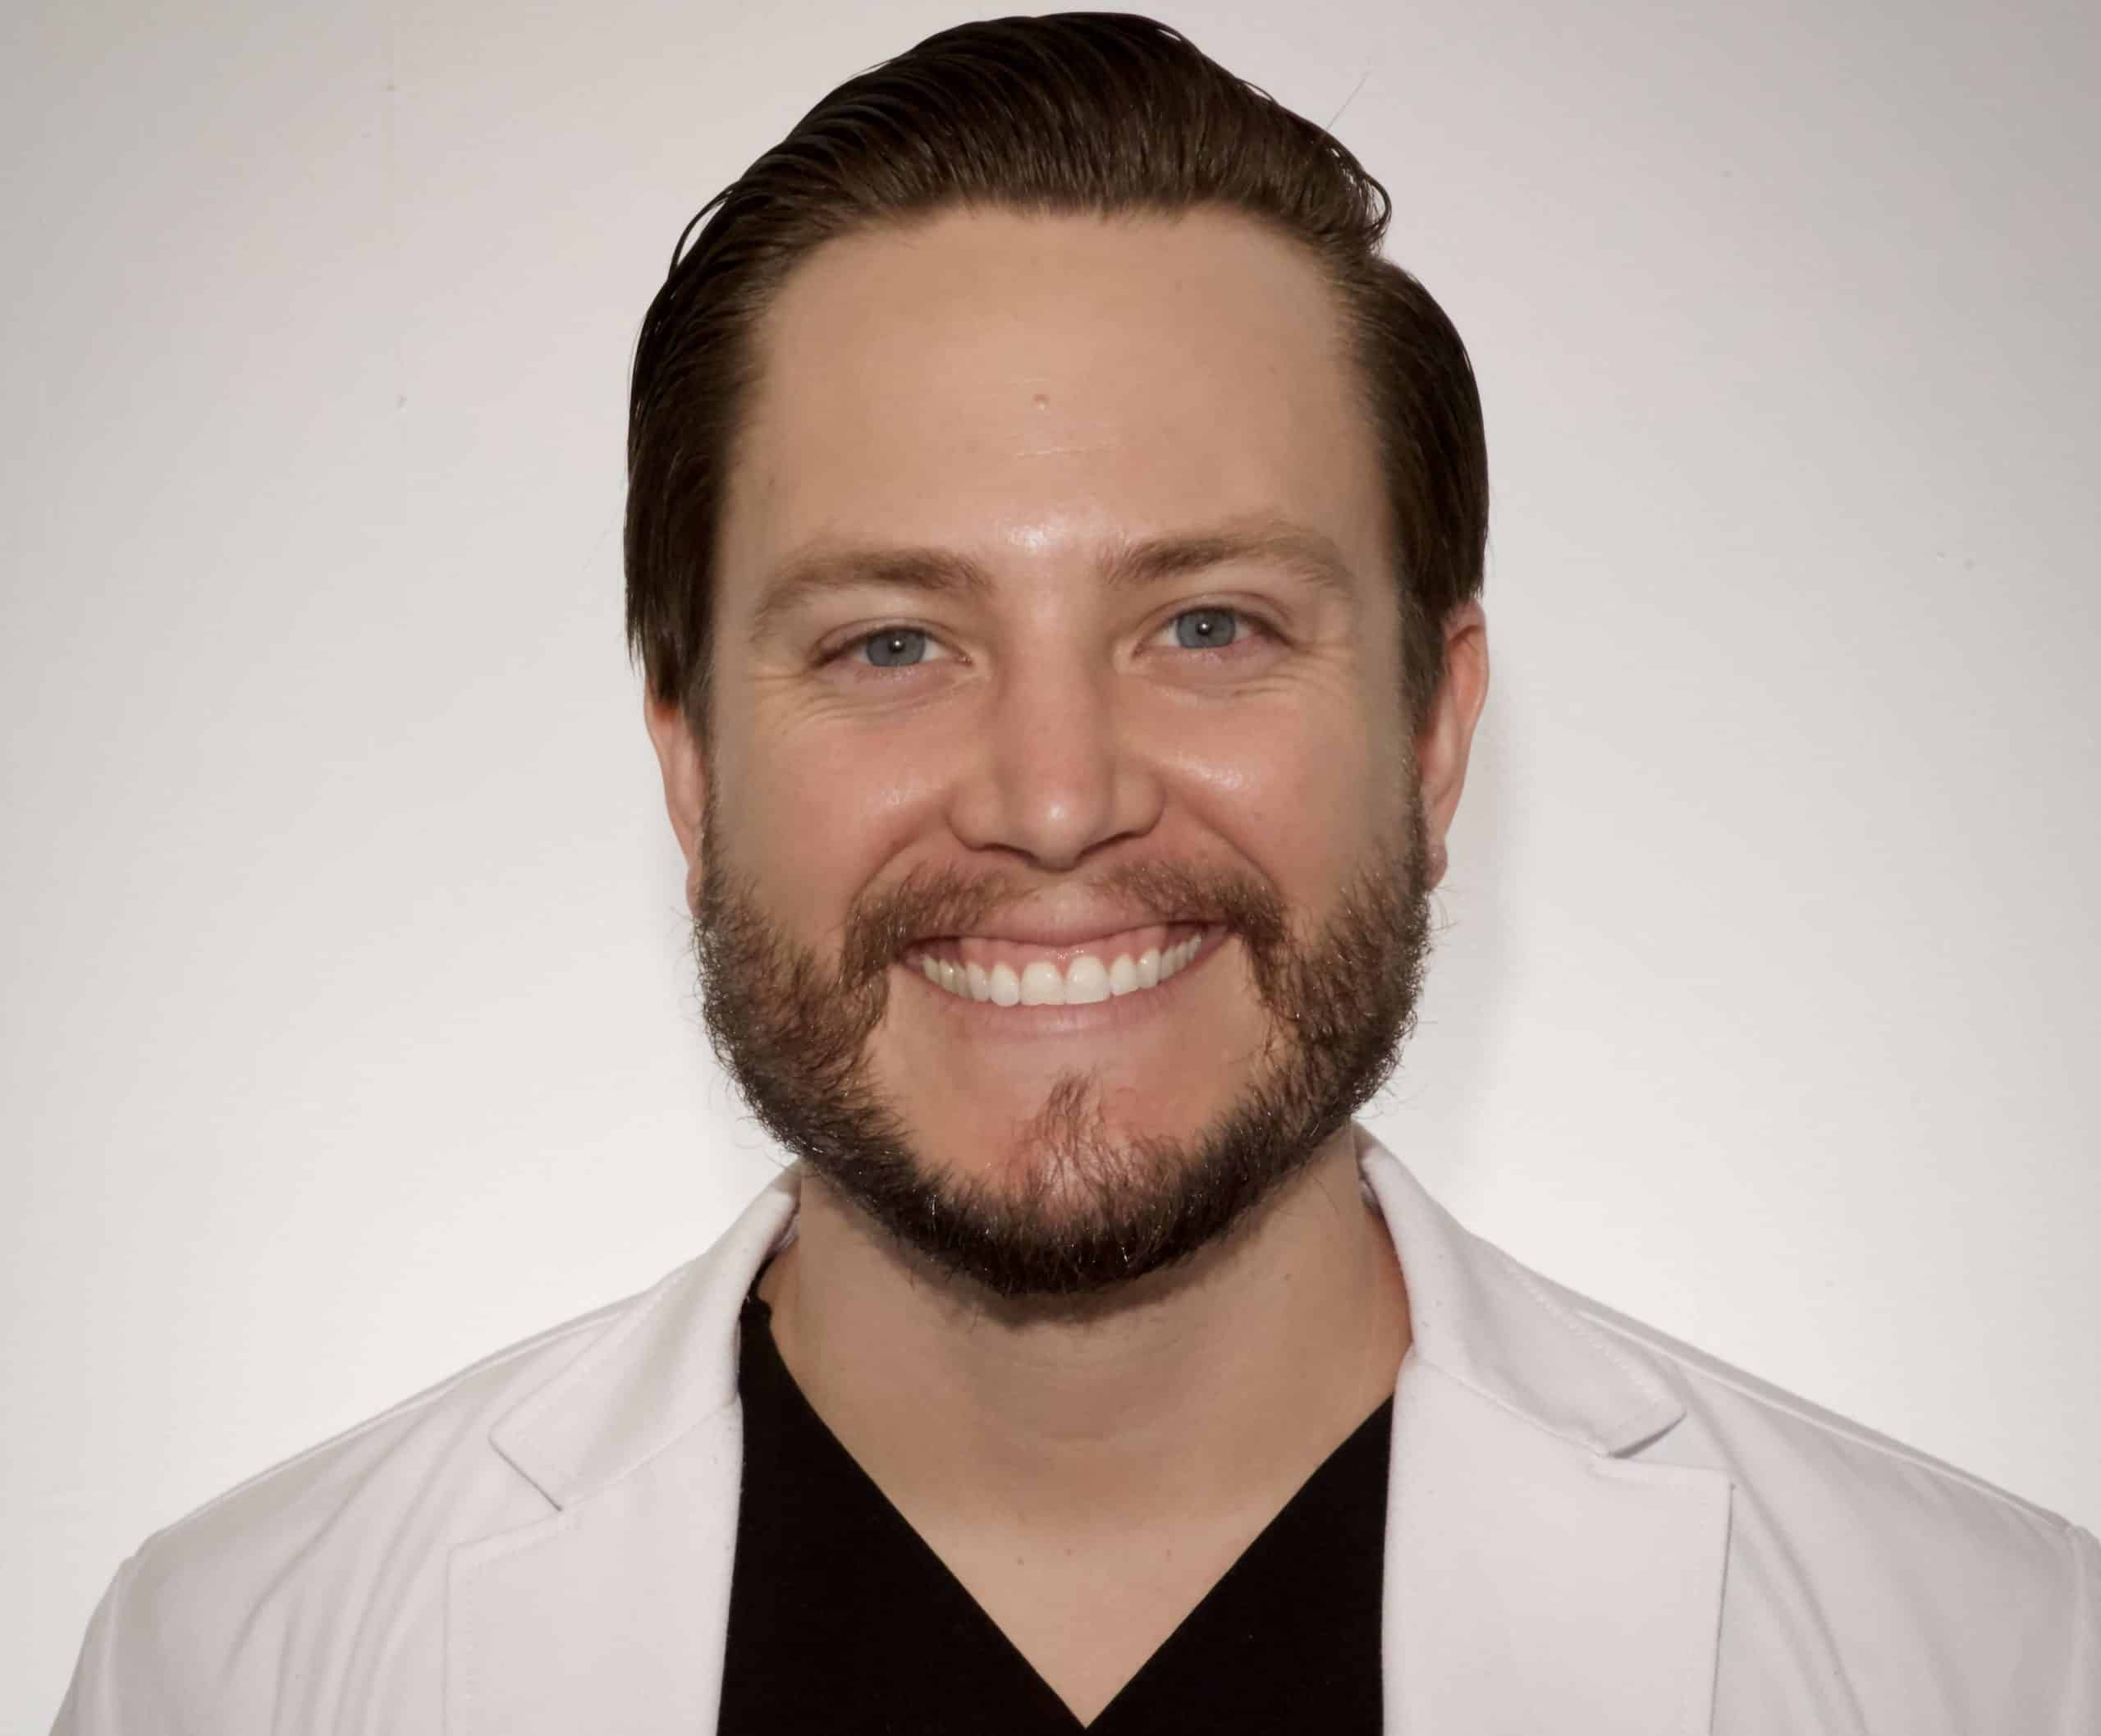 Dr. Steven Robertson - Family Dentistry On Montford - Charlotte, NC